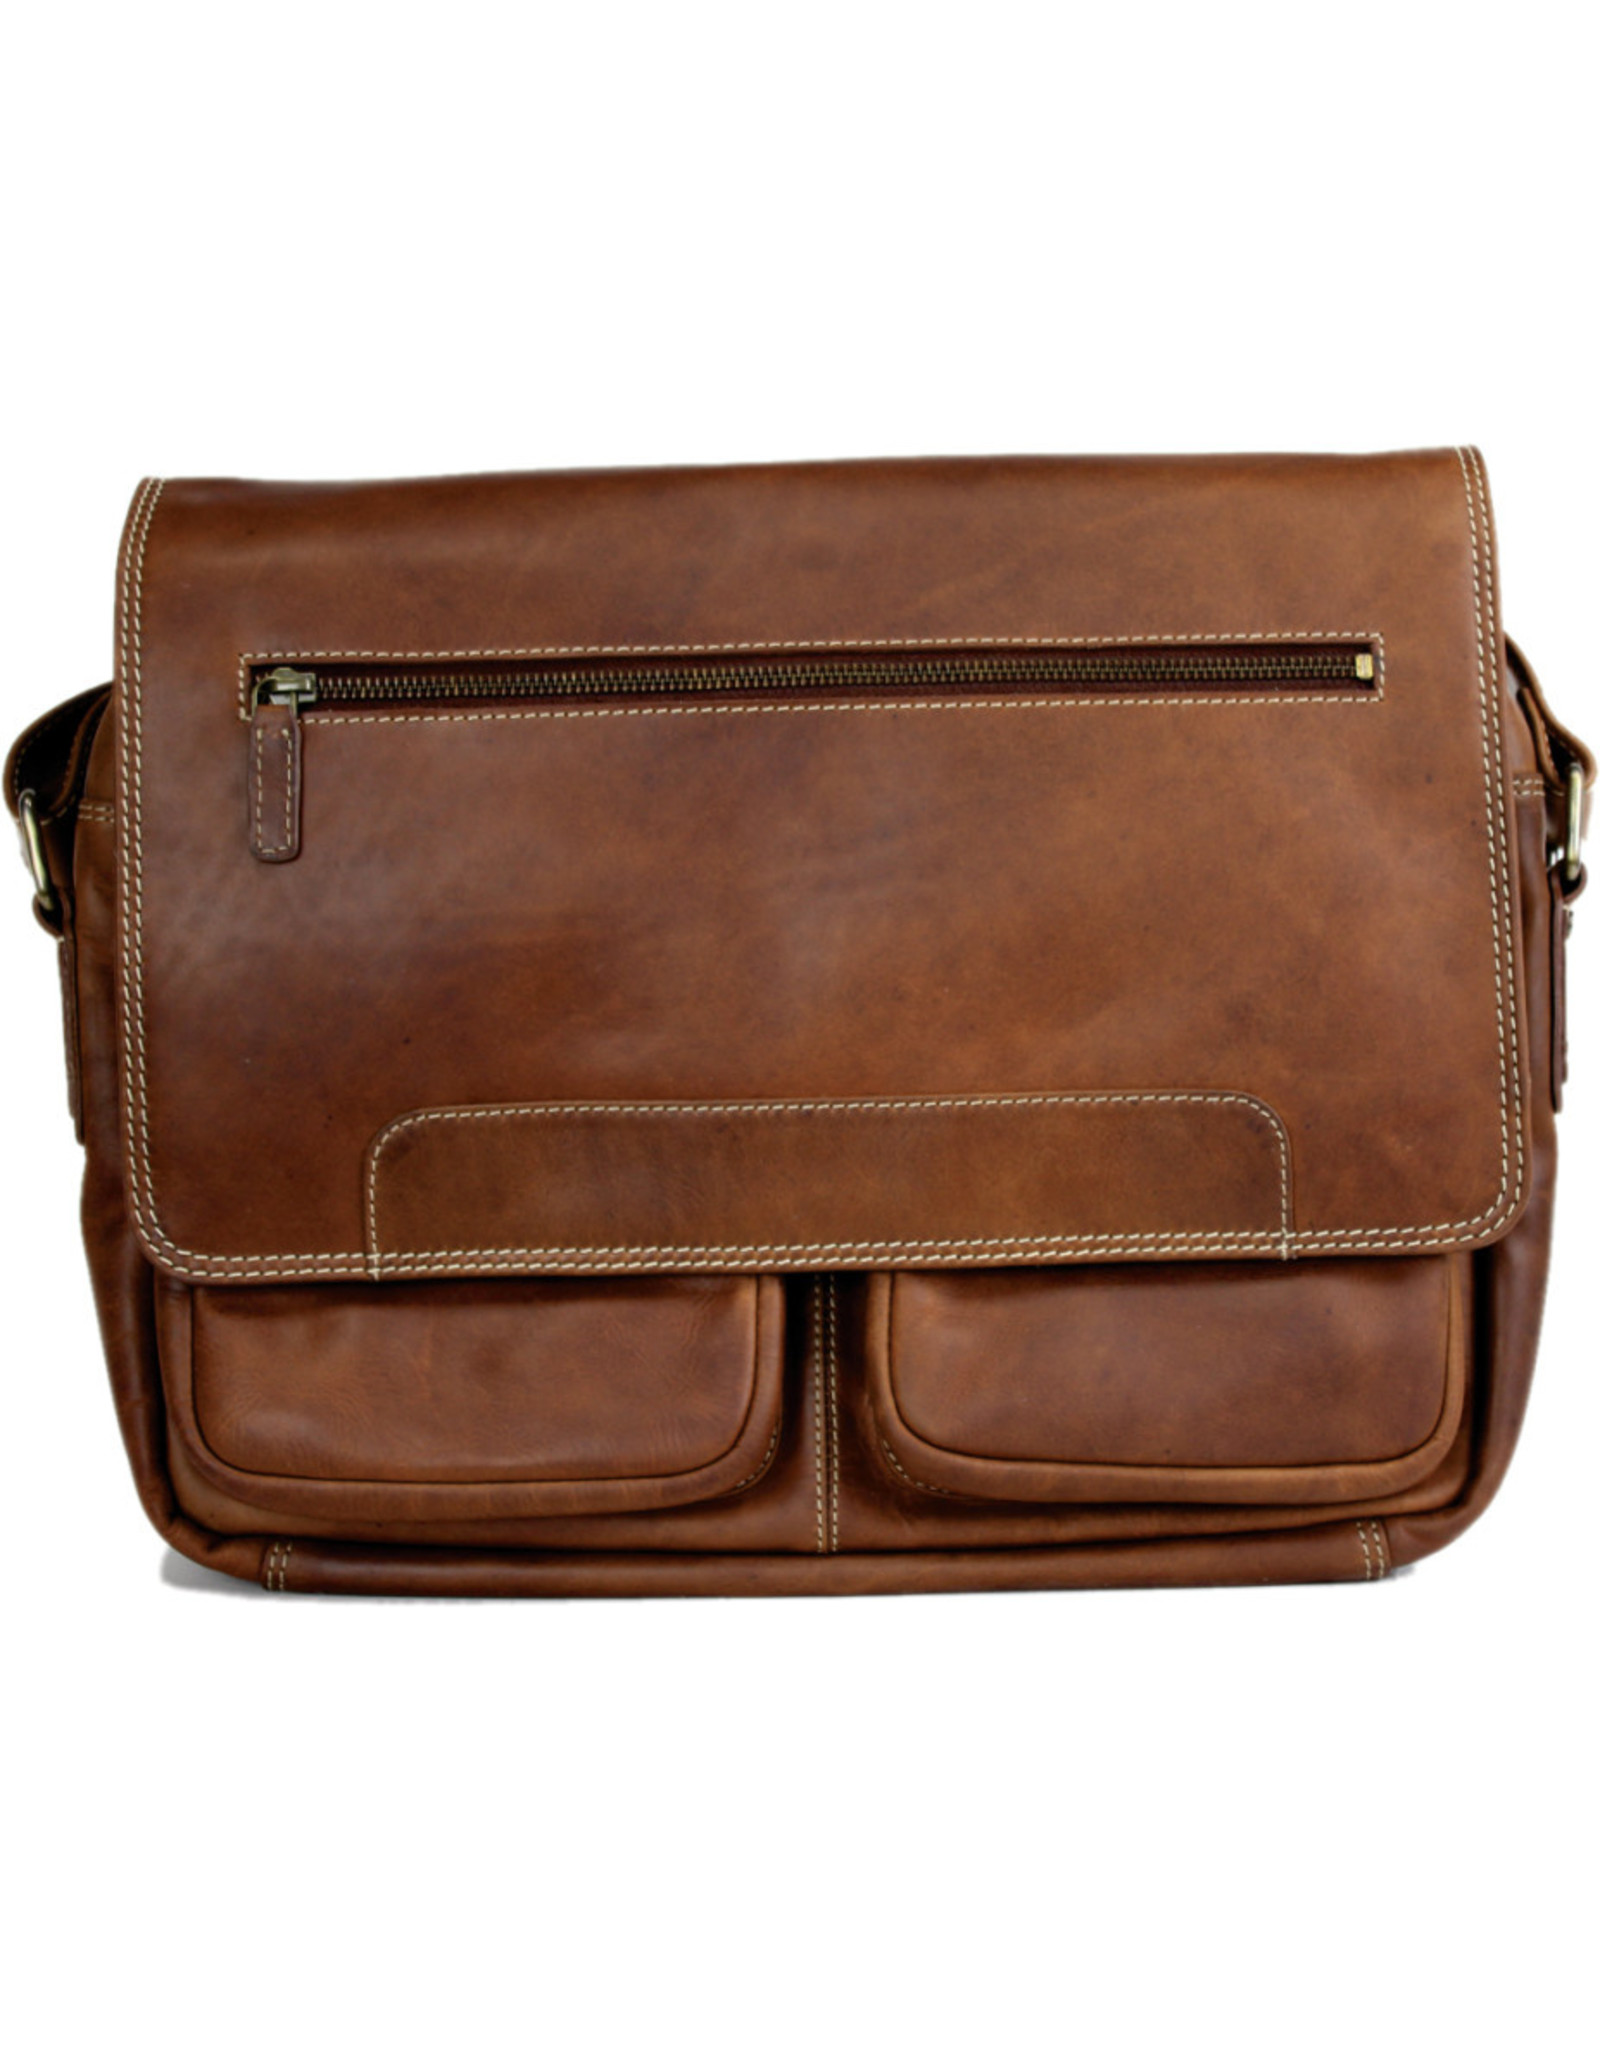 "Rugged Earth Rugged Earth Sac Messager 199033 Brown W 14""*H 12""*D 4"""